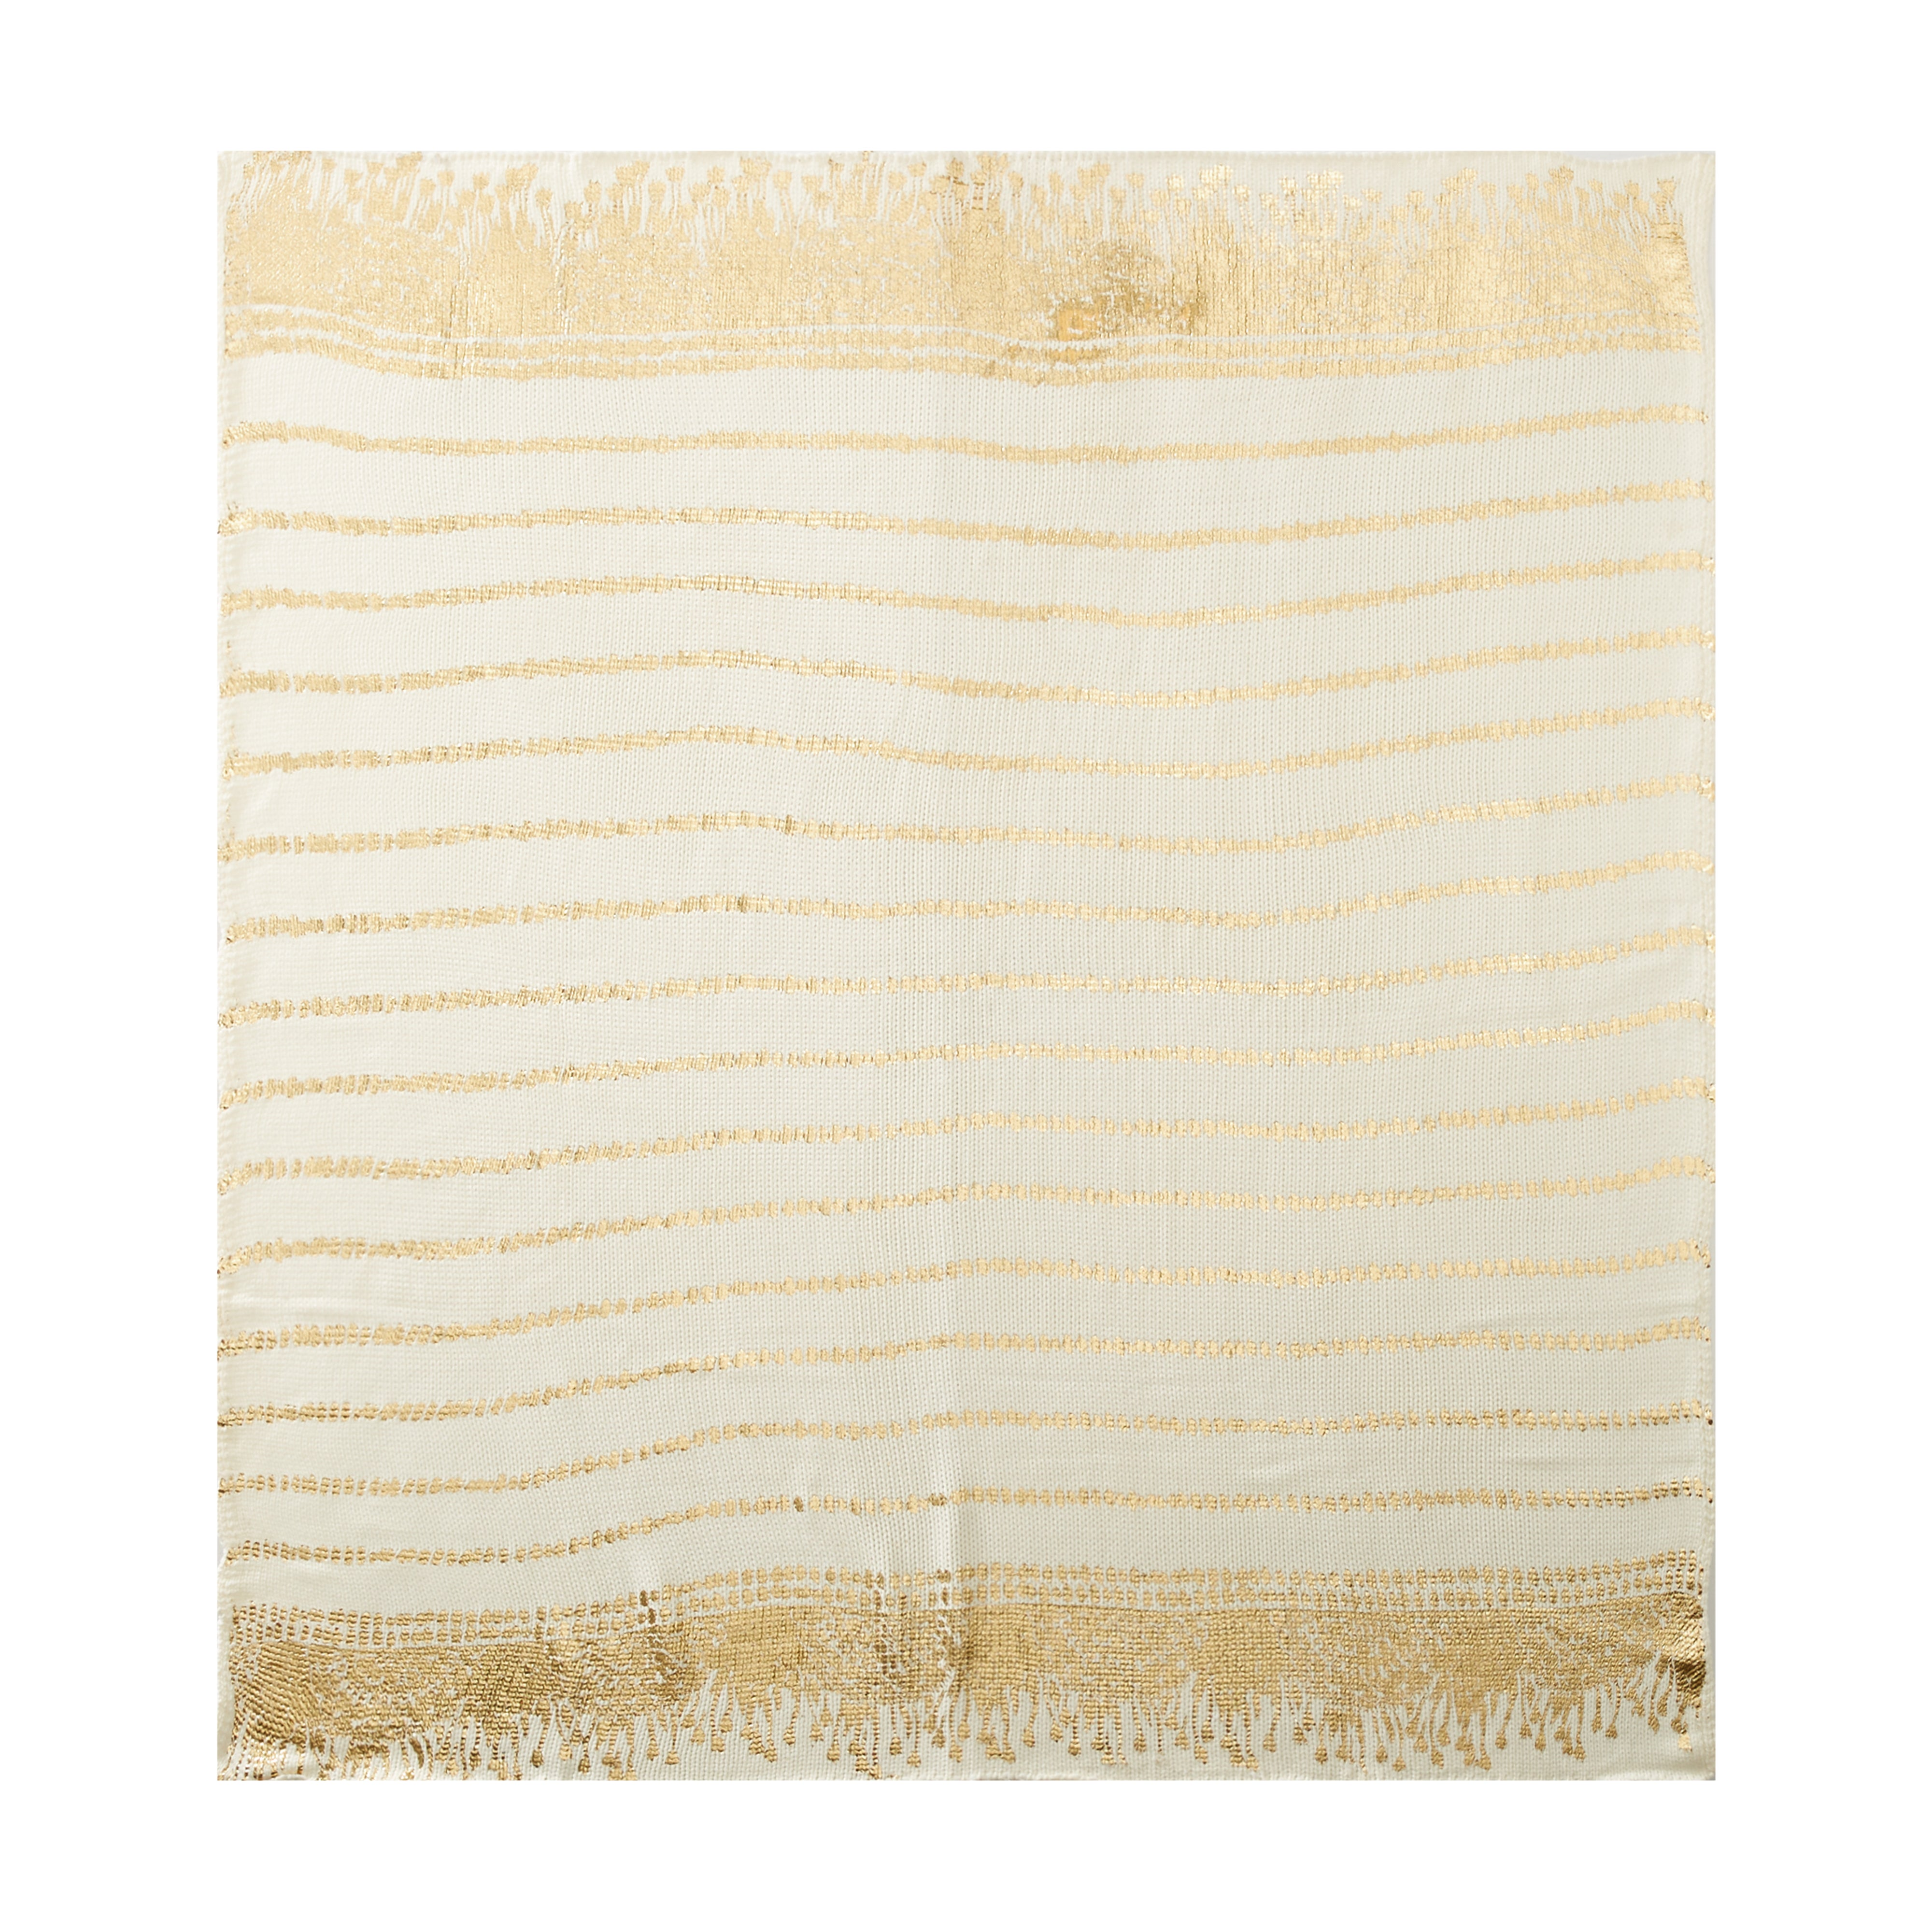 PBT-Lilly-Pulitzer-Gold-Printed-Knit-Throw-White-Gold-50×60-SILO